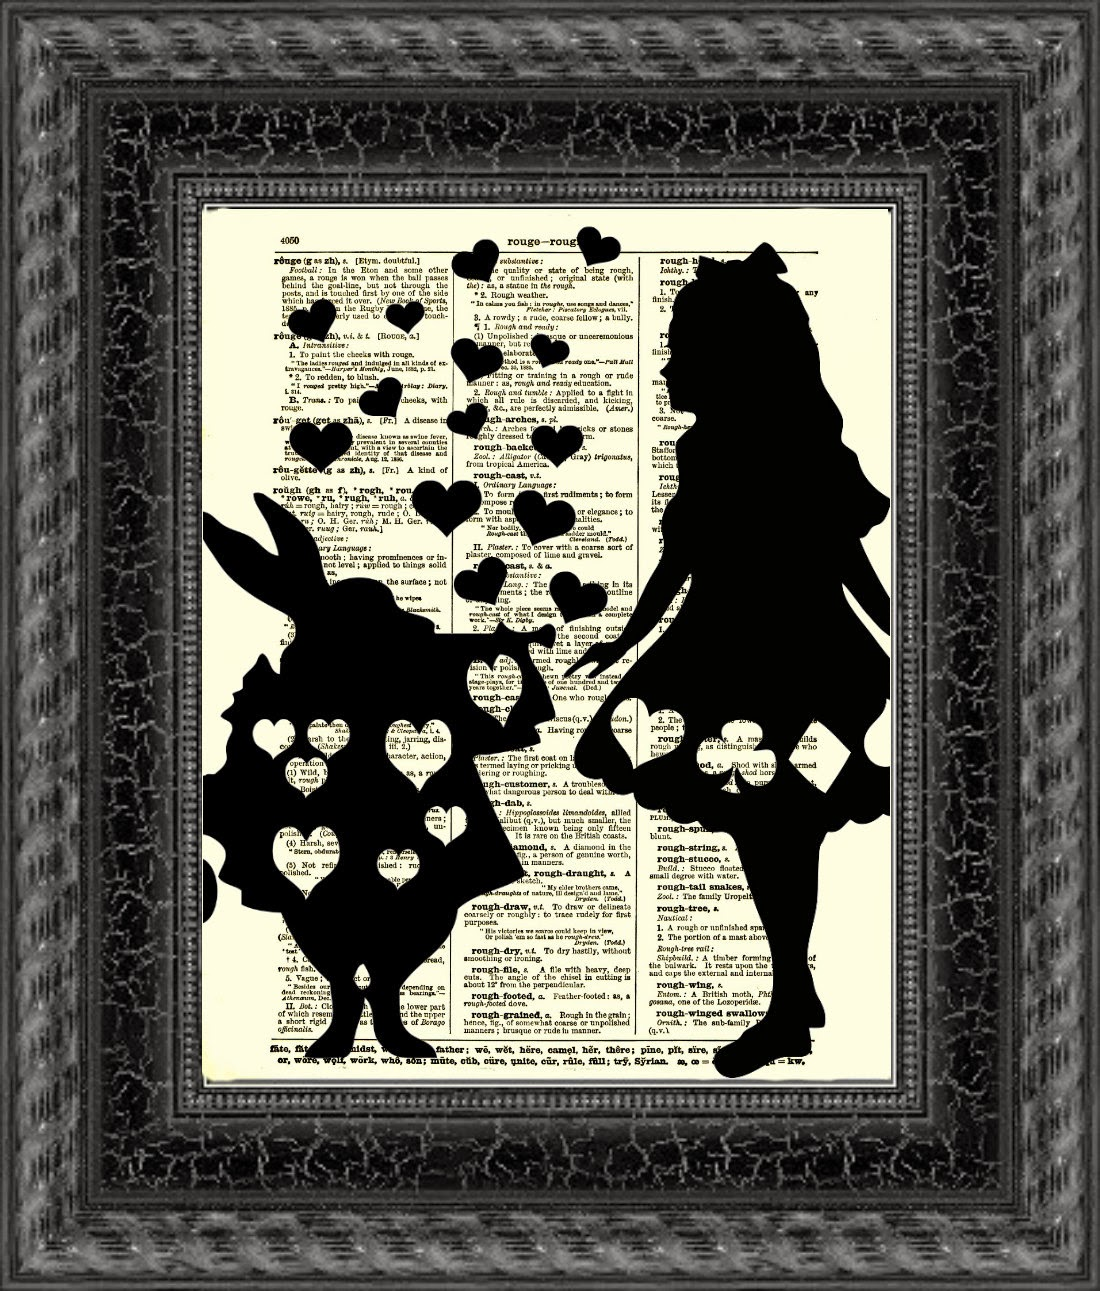 01-Alice-in-Wonderland-Belle-Old-Books-and-Dictionaries-in-Re-Imagination-Prints-www-designstack-co